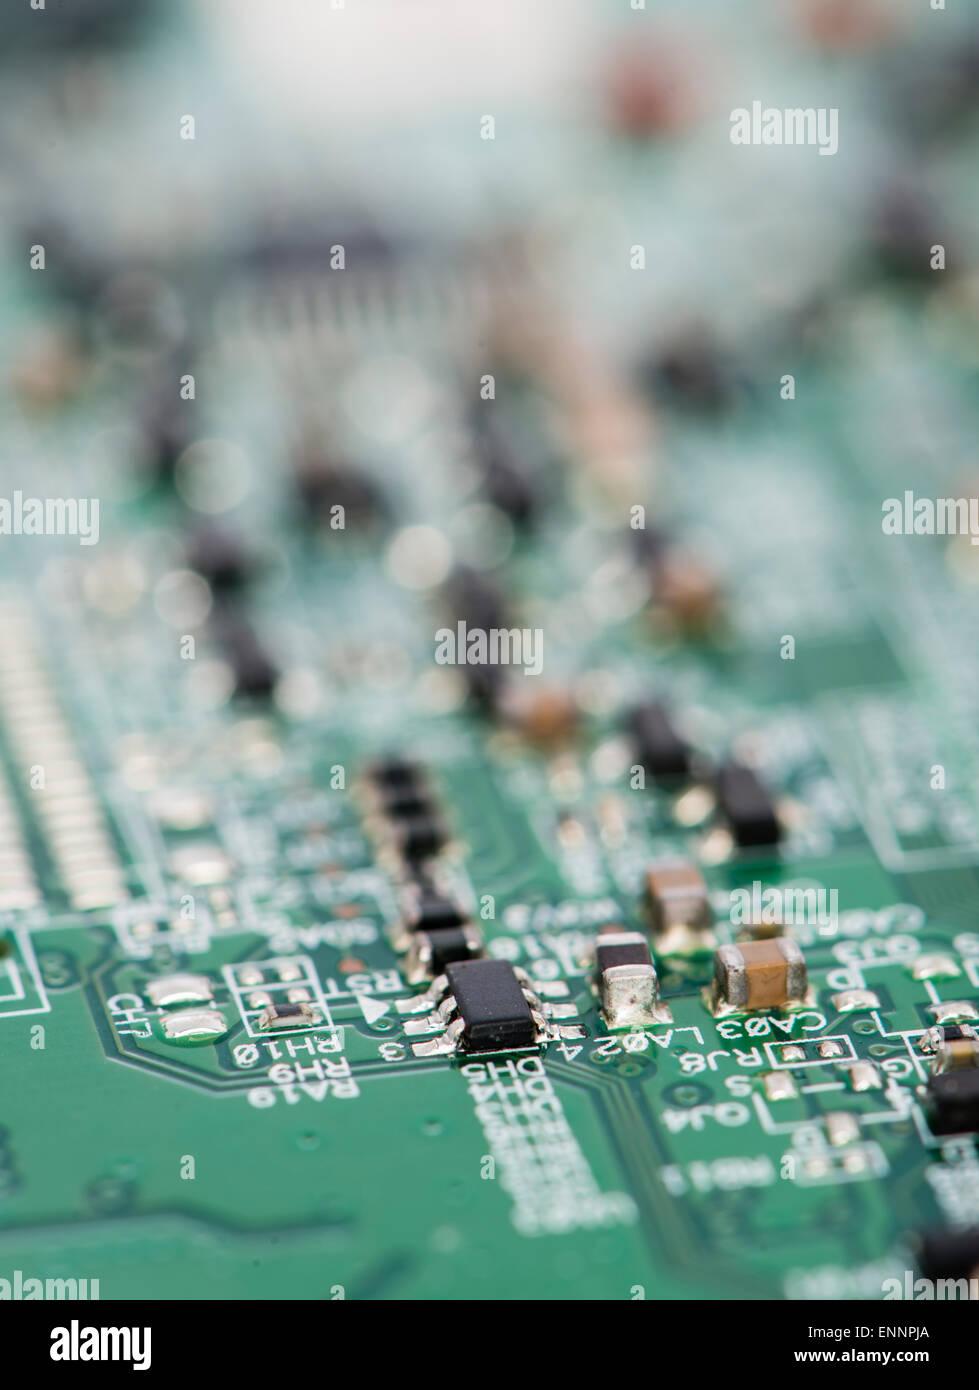 Ic Chip Stock Photos Images Page 2 Alamy Is The Central Printed Circuit Board Pcb In Many Modern Computers With Different Components Image